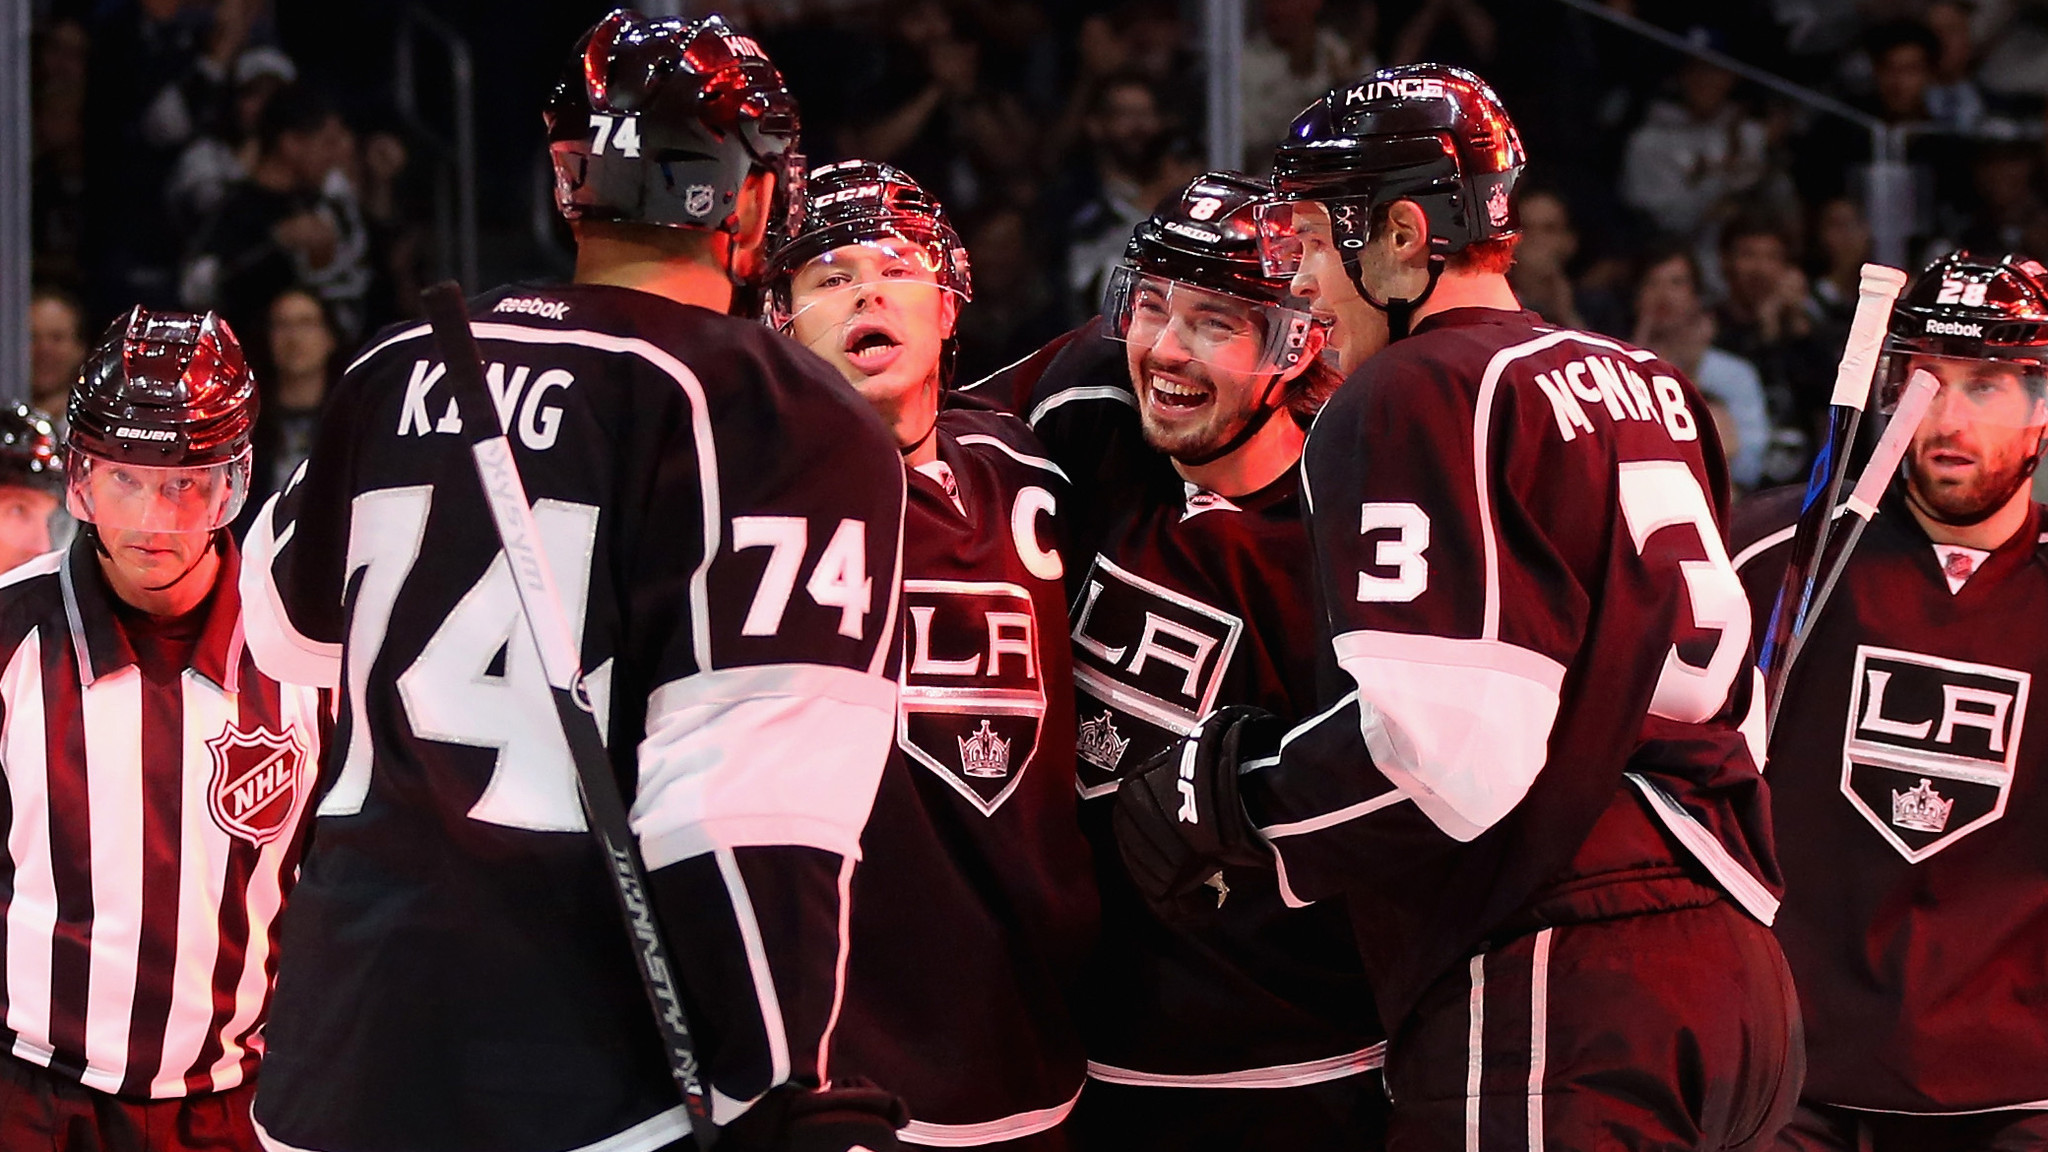 Kings Are A Scoring Machine In 6-1 Victory Over Oilers